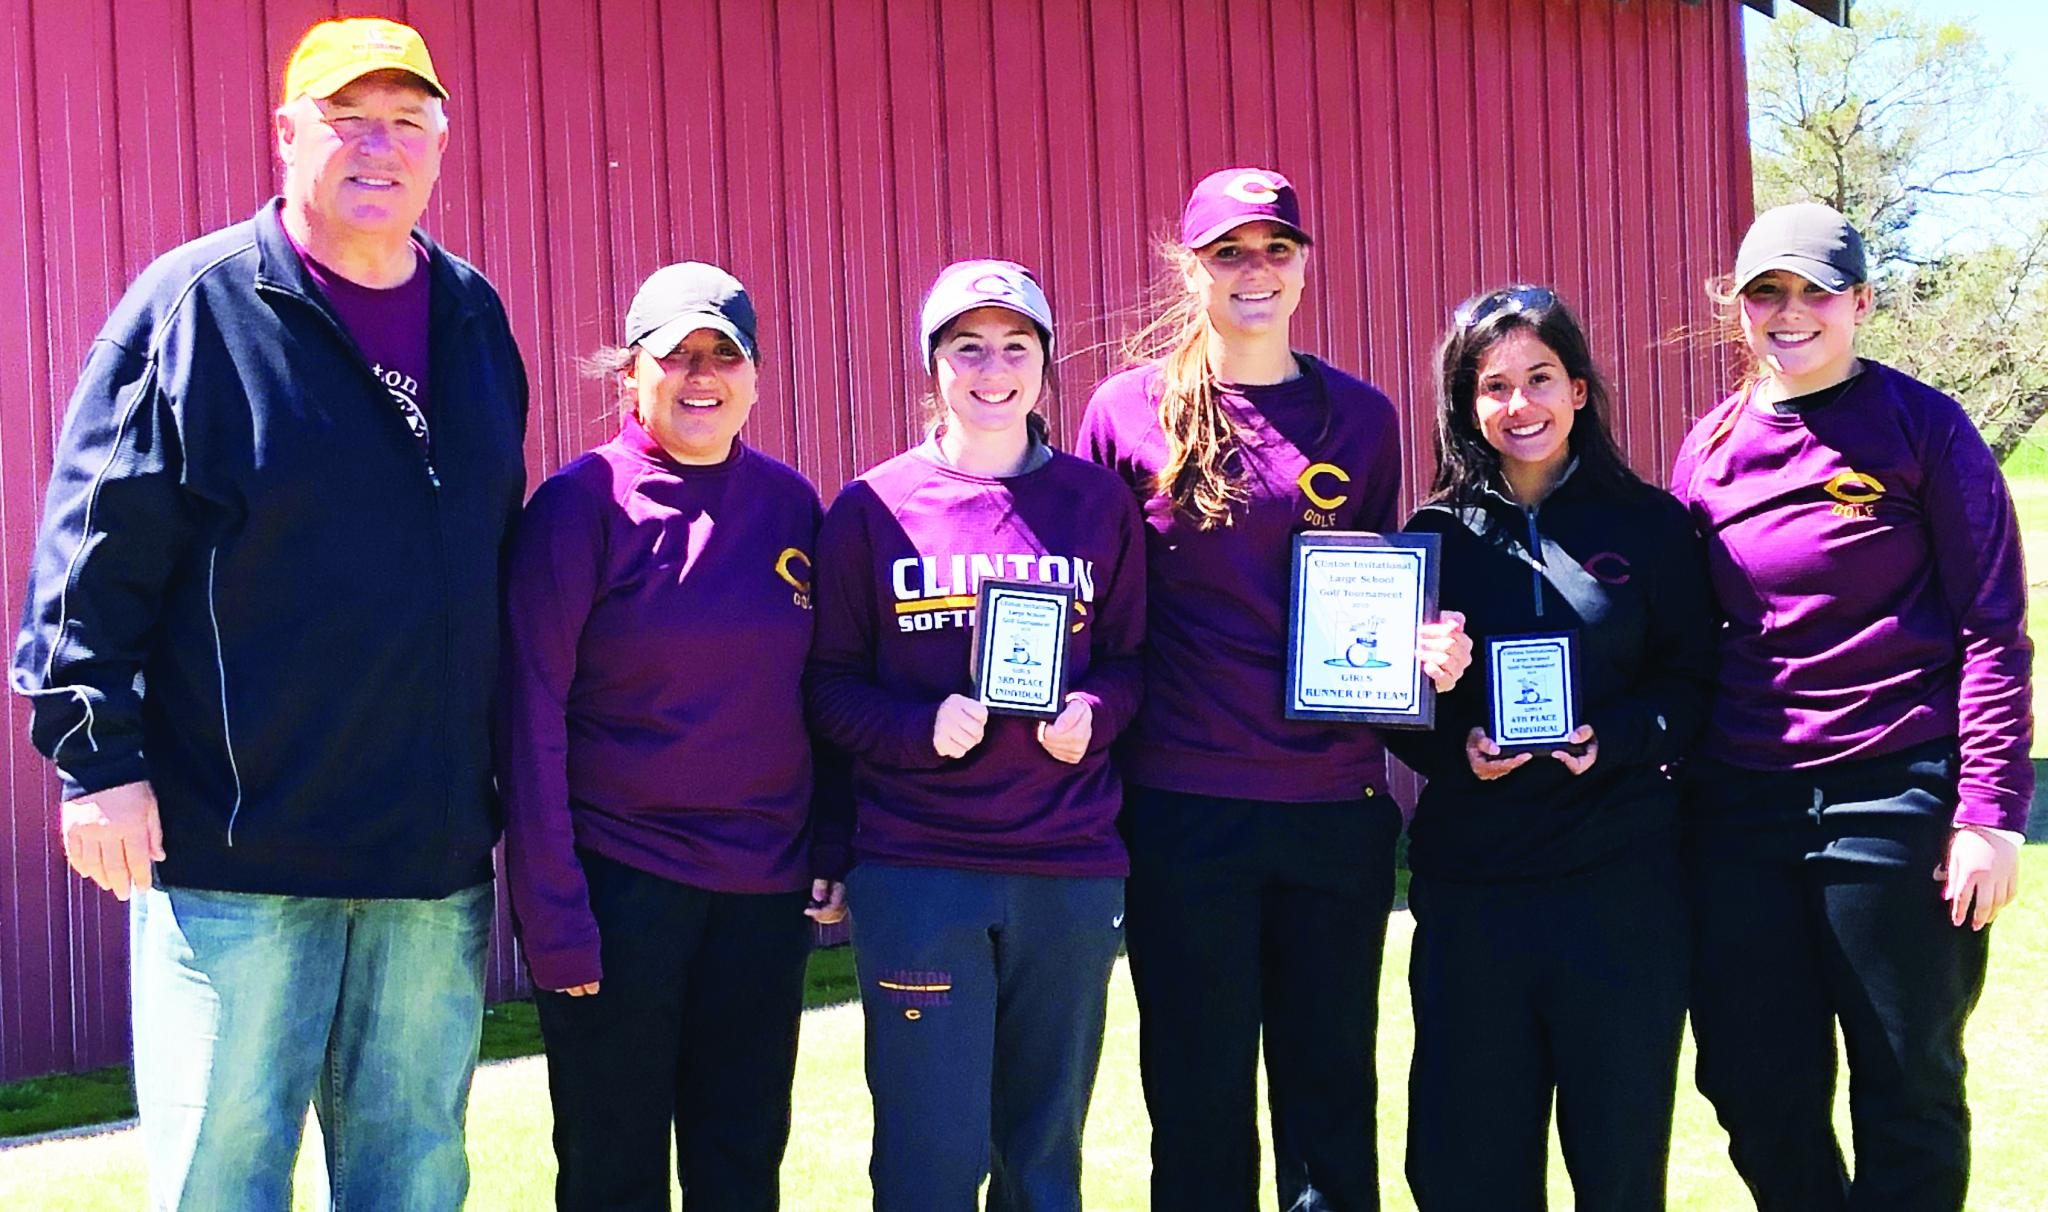 The Clinton girls' golf team earned second place at their home tourney Thursday. Pictured are, from left, CHS head golf coach Mike Lee, Audrie Hernandez, Loren Coleman, Kennedy Meacham, Kaitlin Jenkins and Harli Heerwald.